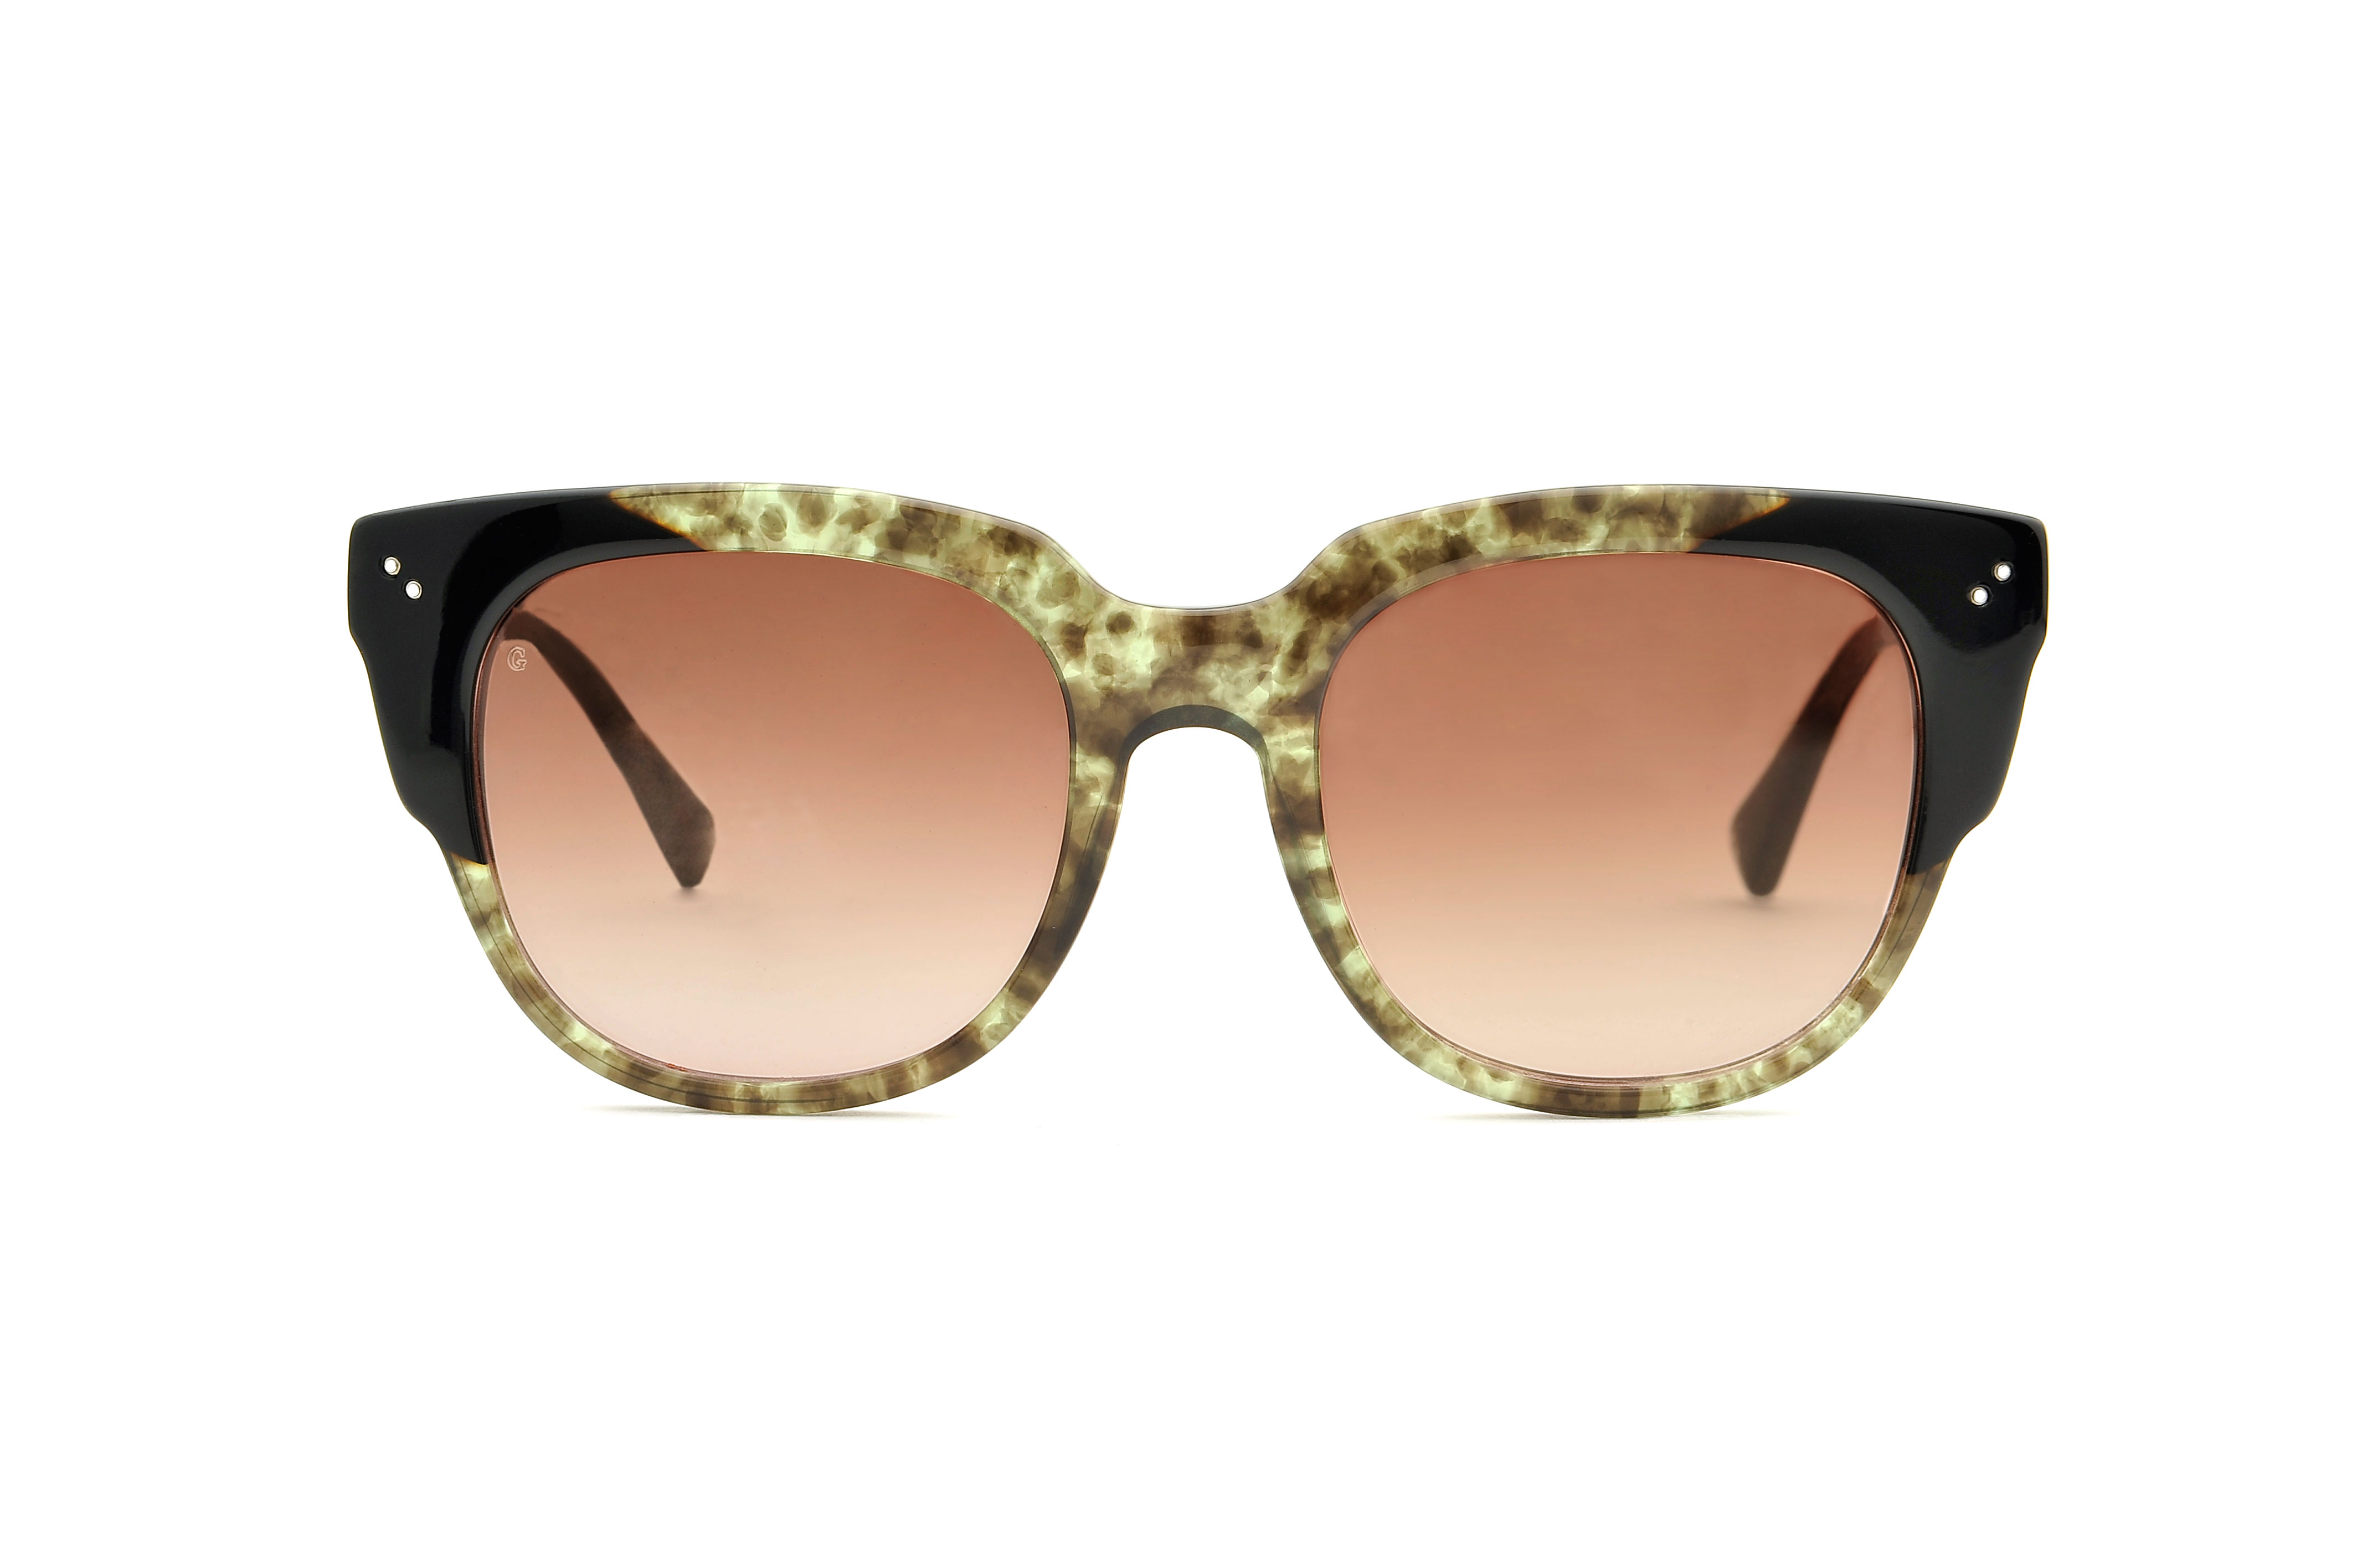 Lily acetate squared green sunglasses by GIGI Studios